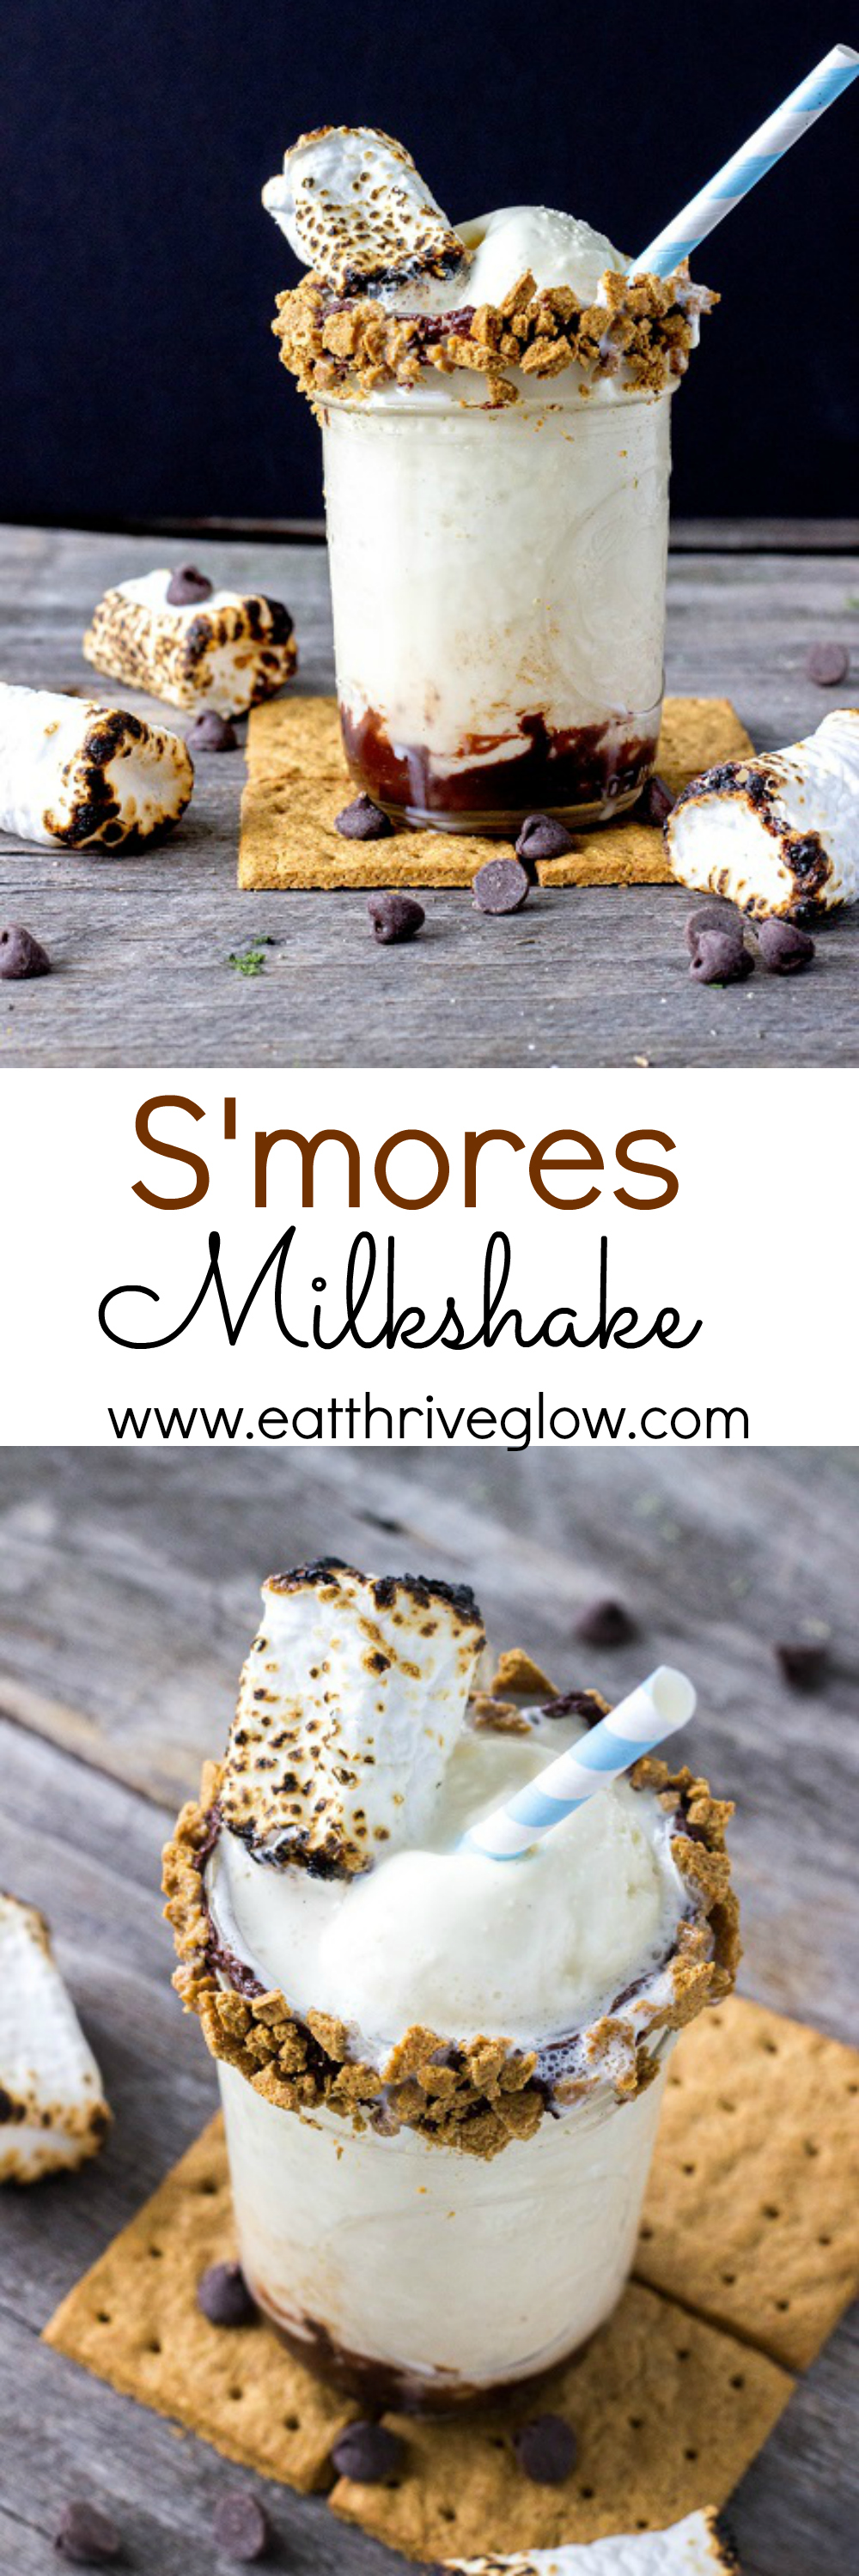 S'mores Milkshake - Eat Thrive Glow